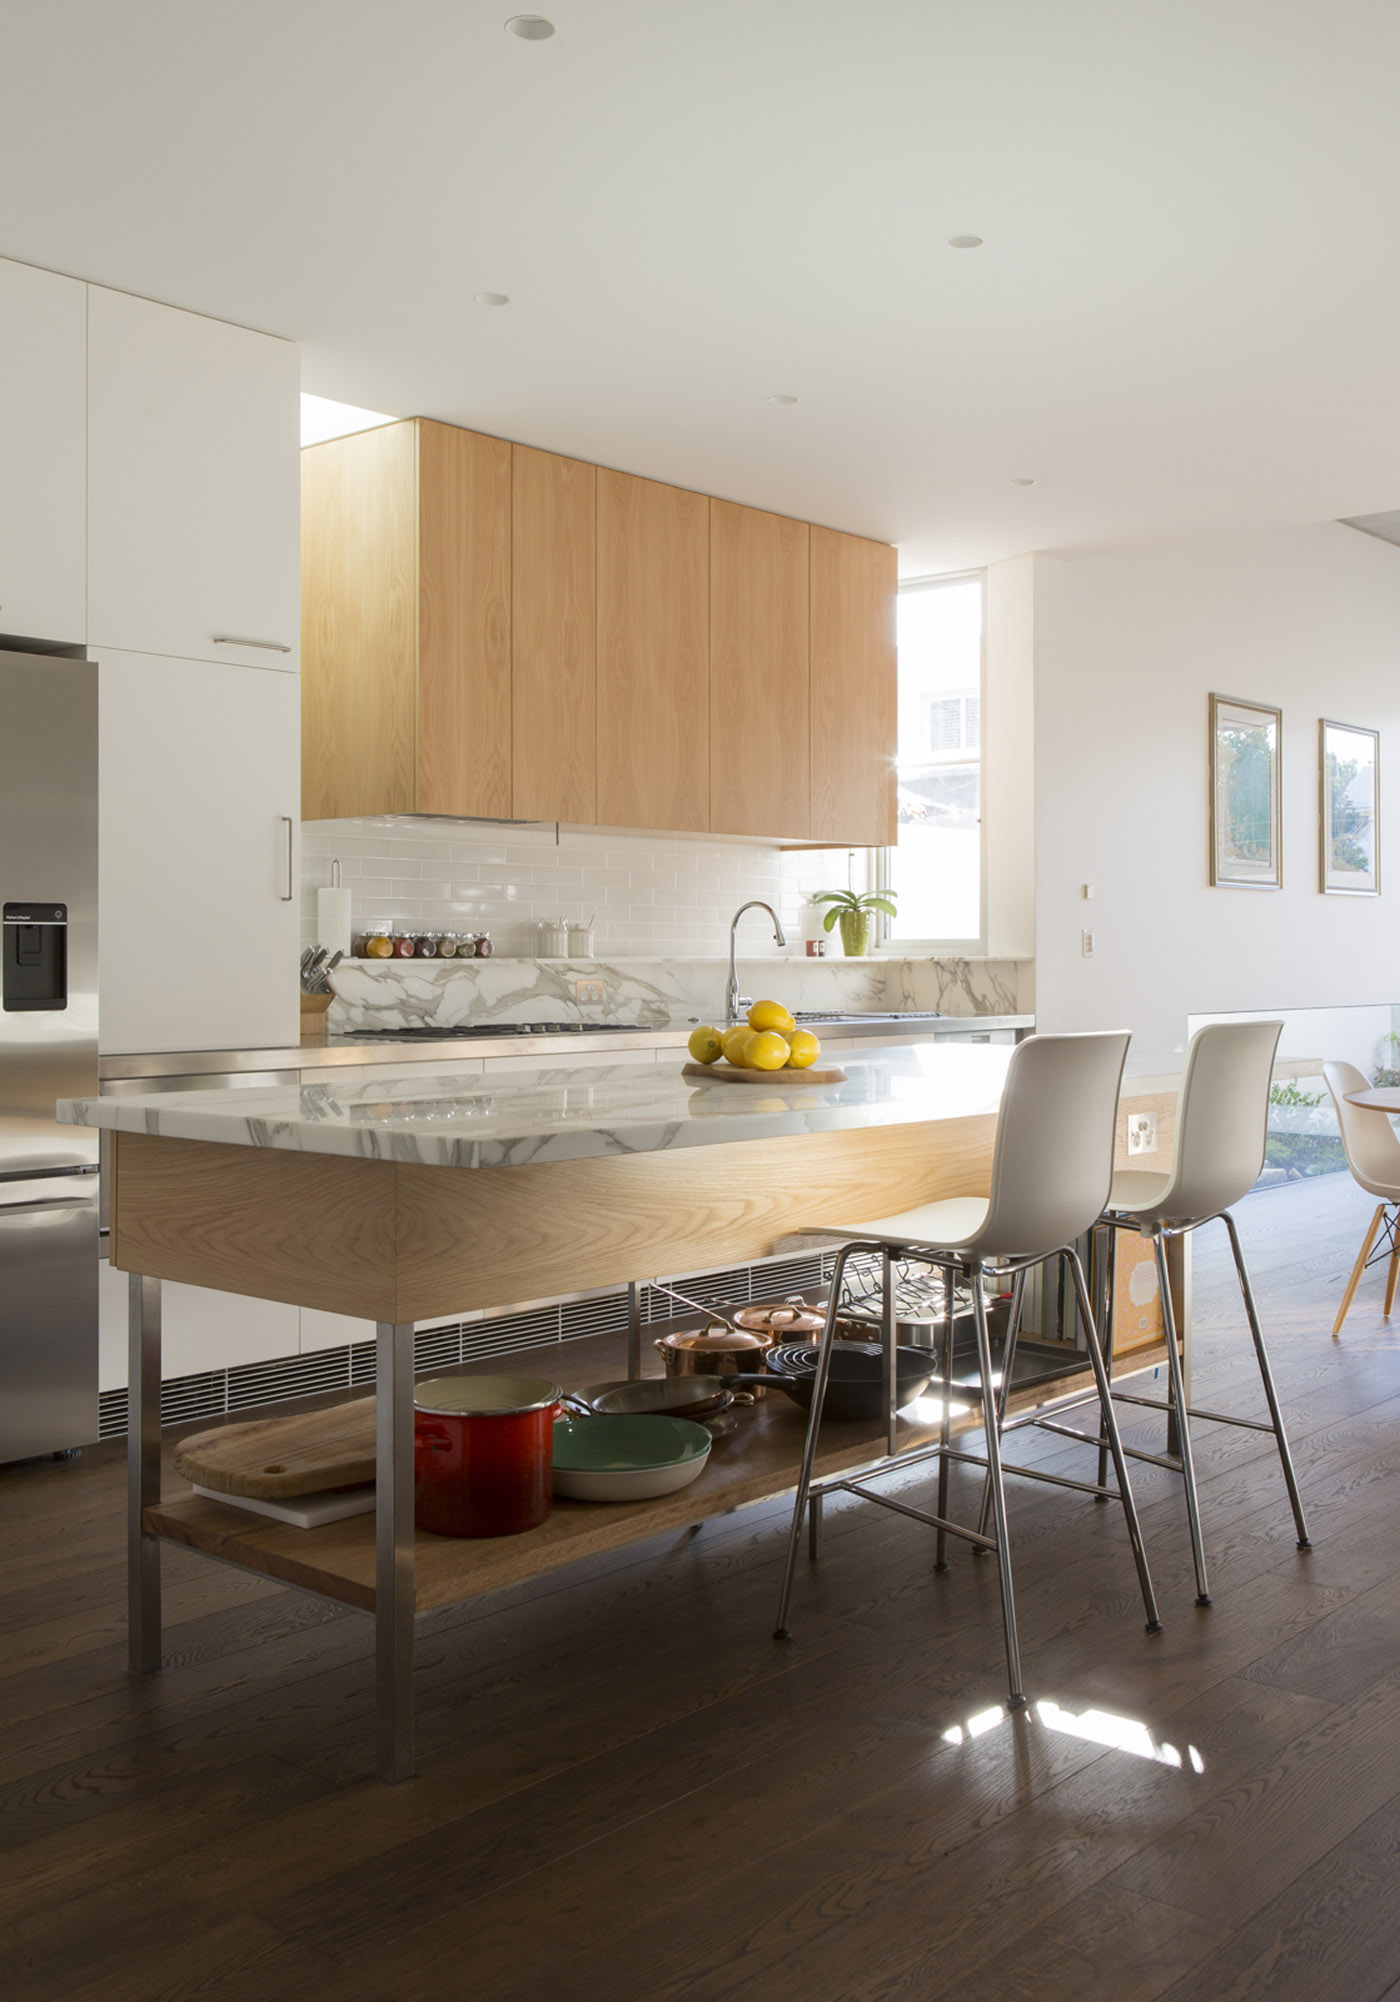 Gandha Kariappa Terrace by Sydney residential architects Sam Crawford Architects. Calacatta marble, stainless steel and light timber texture kitchen